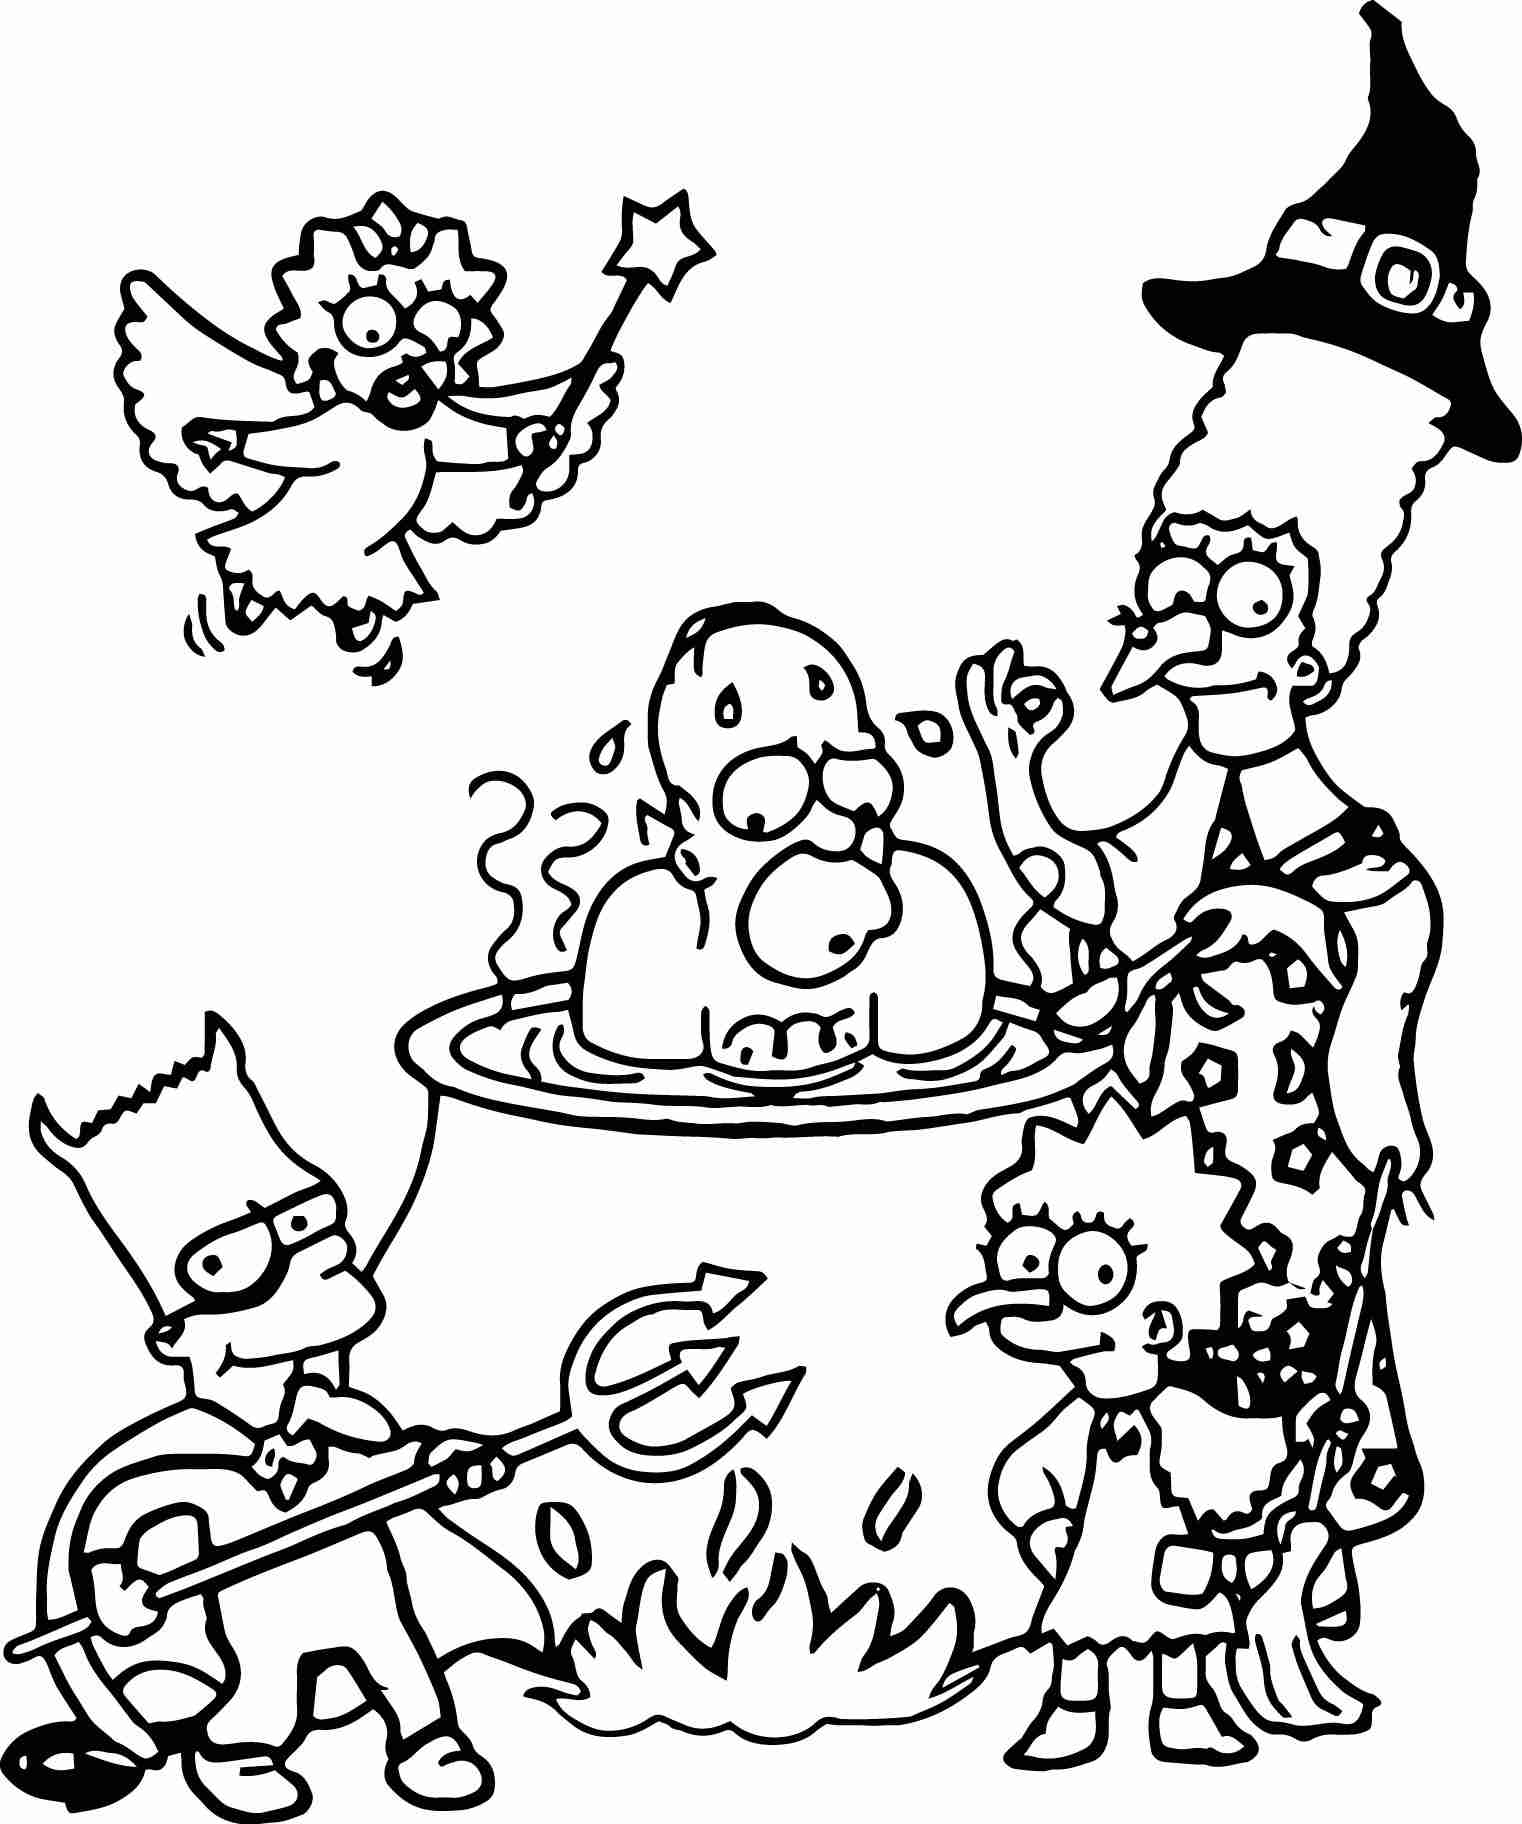 1522x1824 The Simpsons Coloring Pages Free Printable Bebo General To Print